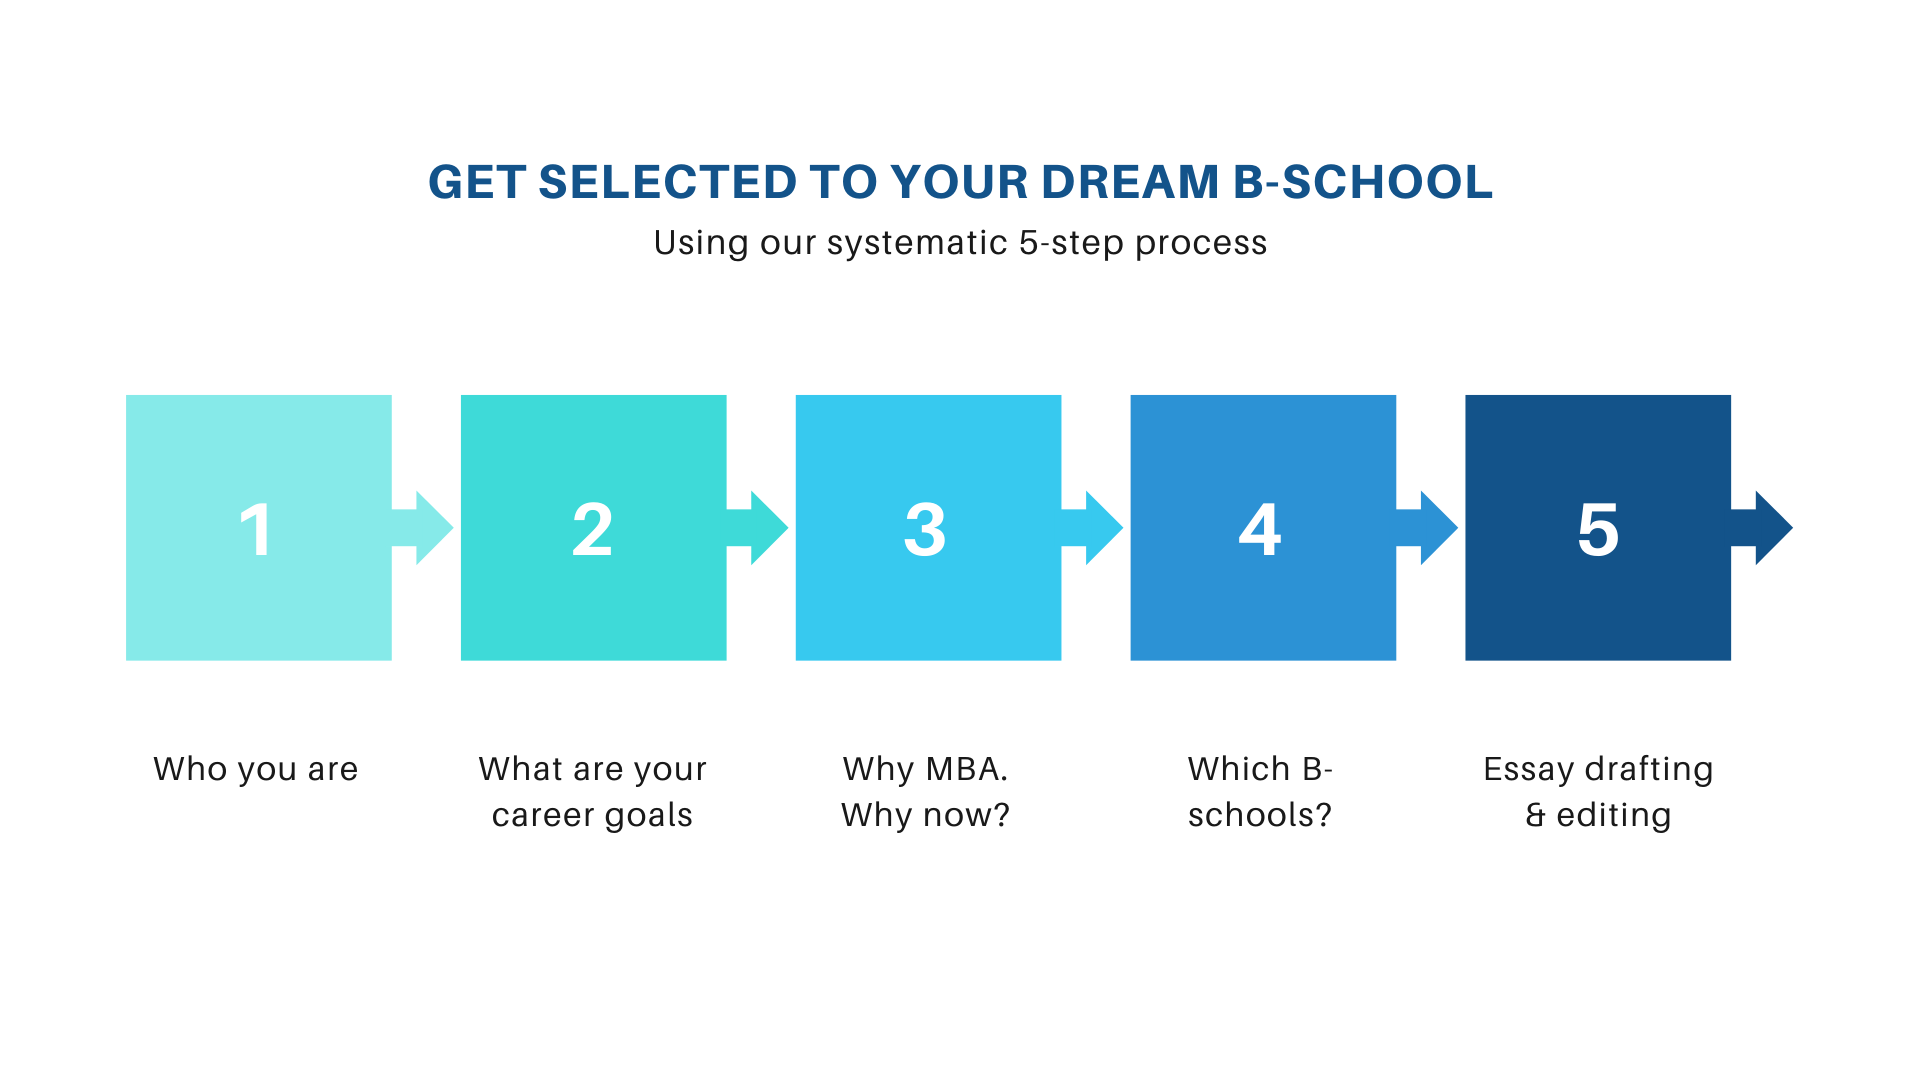 Get selectted to your dream b-school